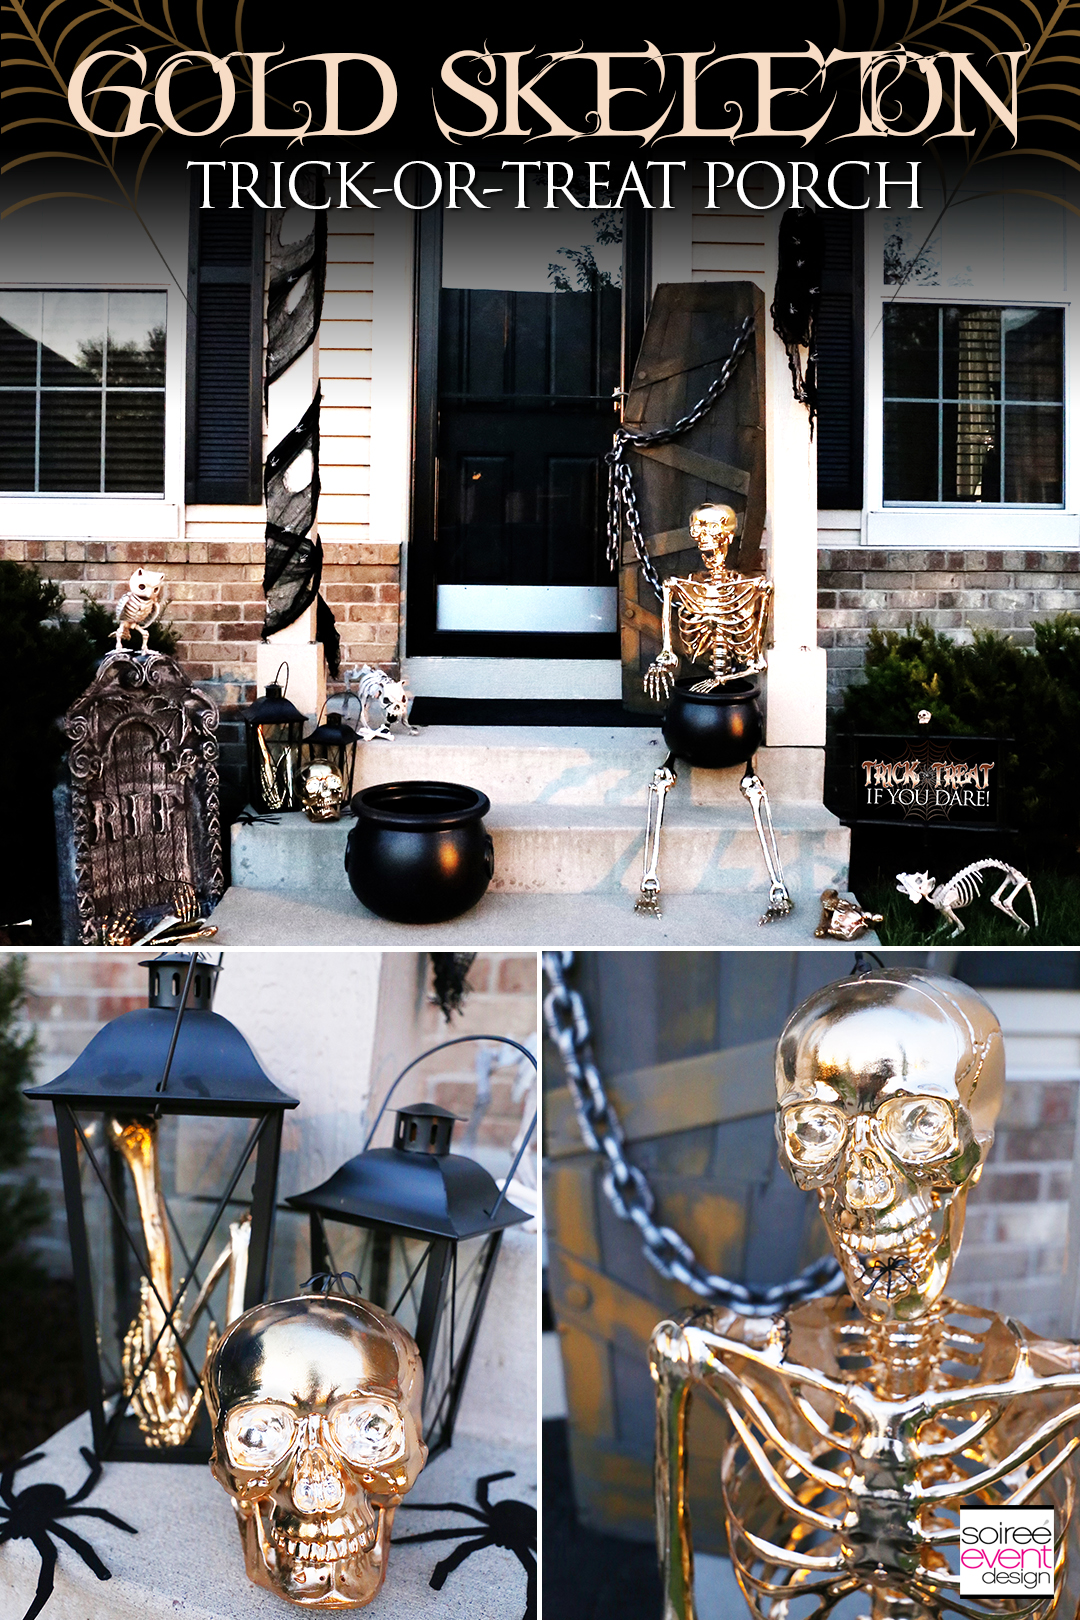 gold skeleton bones halloween trick-or-treat porch - soiree event design